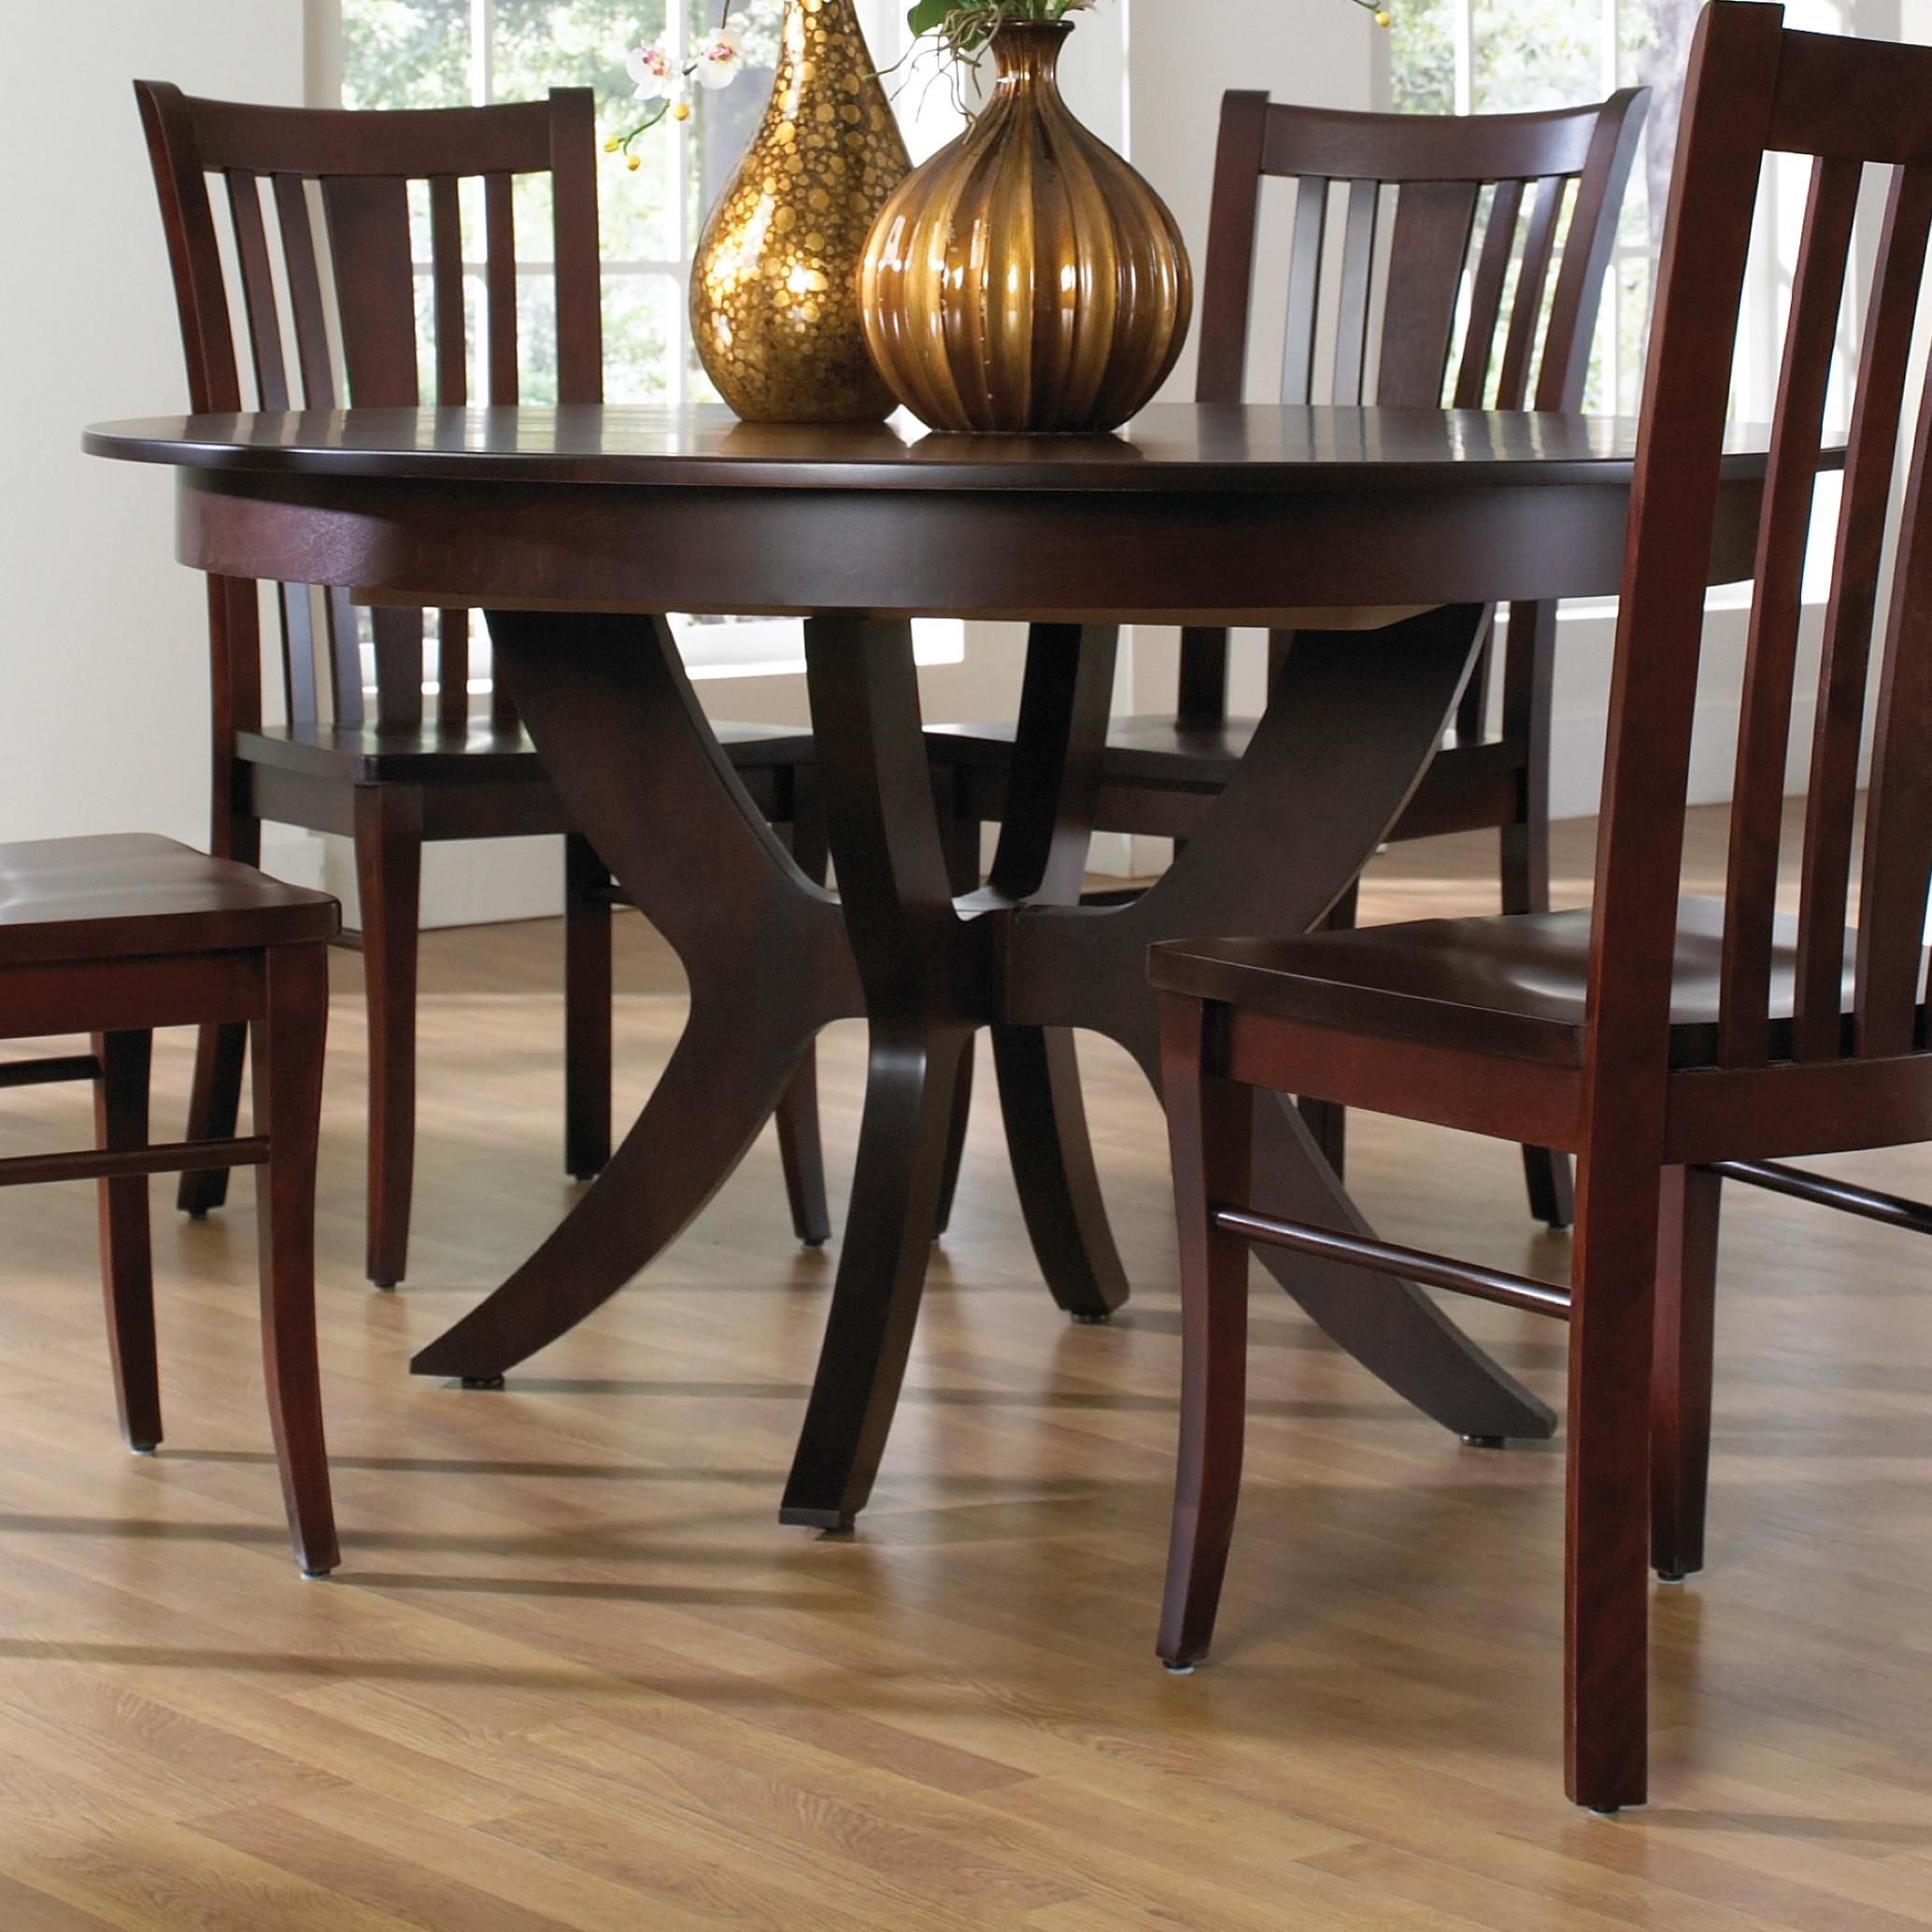 Canadel Custom Dining Customizable Round Table With Pedestal Darvin Furniture Kitchen Table